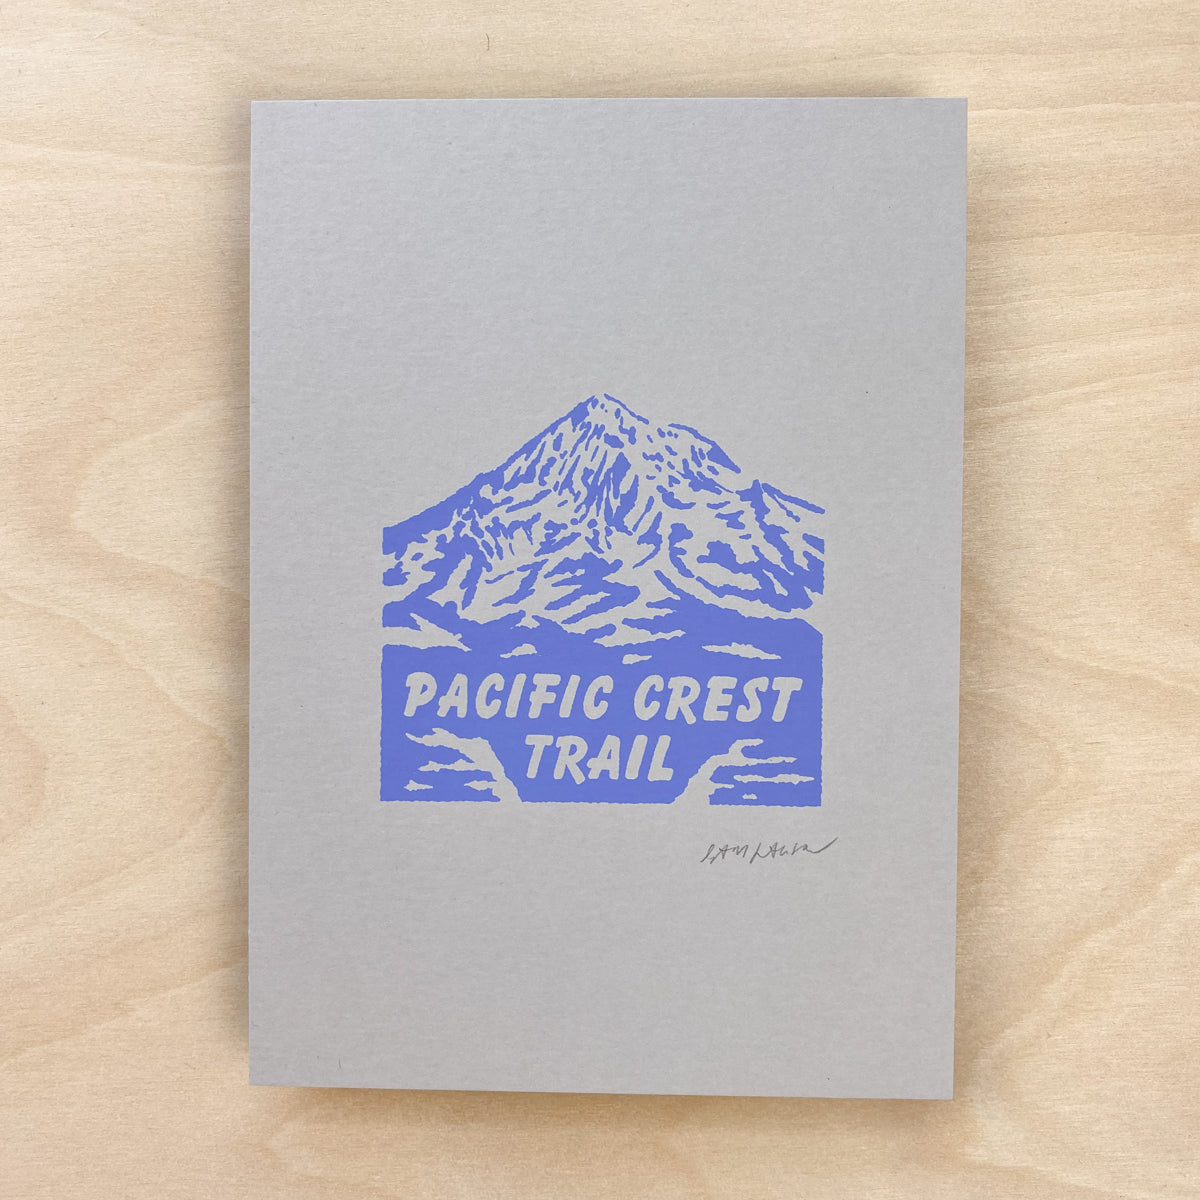 Pacific Crest Trail - Signed 5x7in Print #207